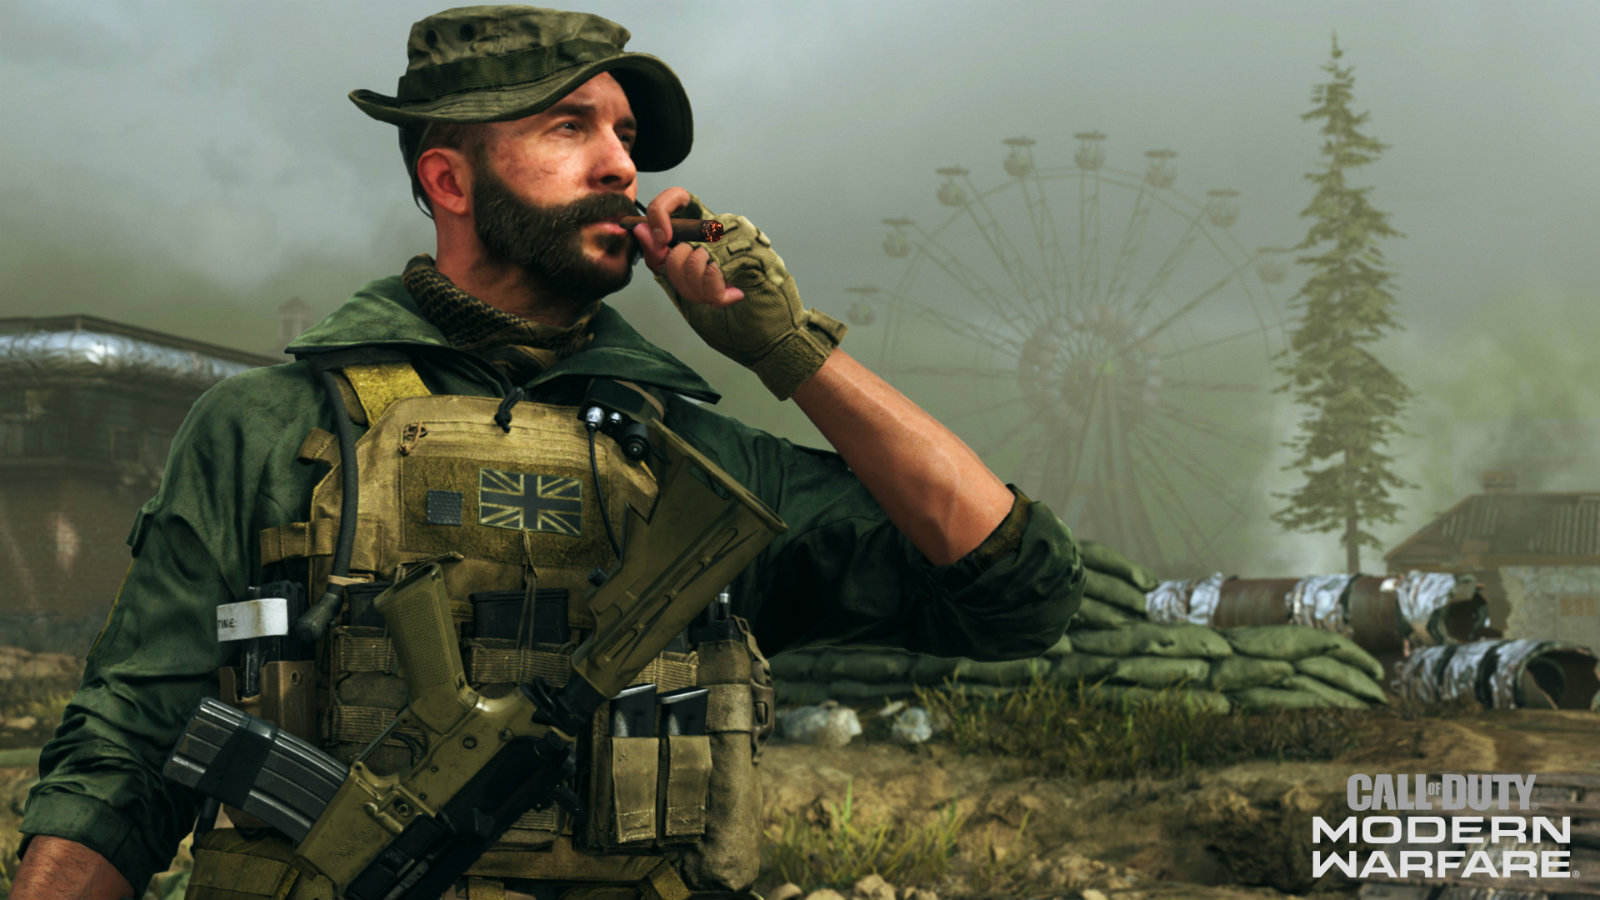 Captain Price smokes a cigar while overlooking battlefield in Call of Duty: Modern Warfare